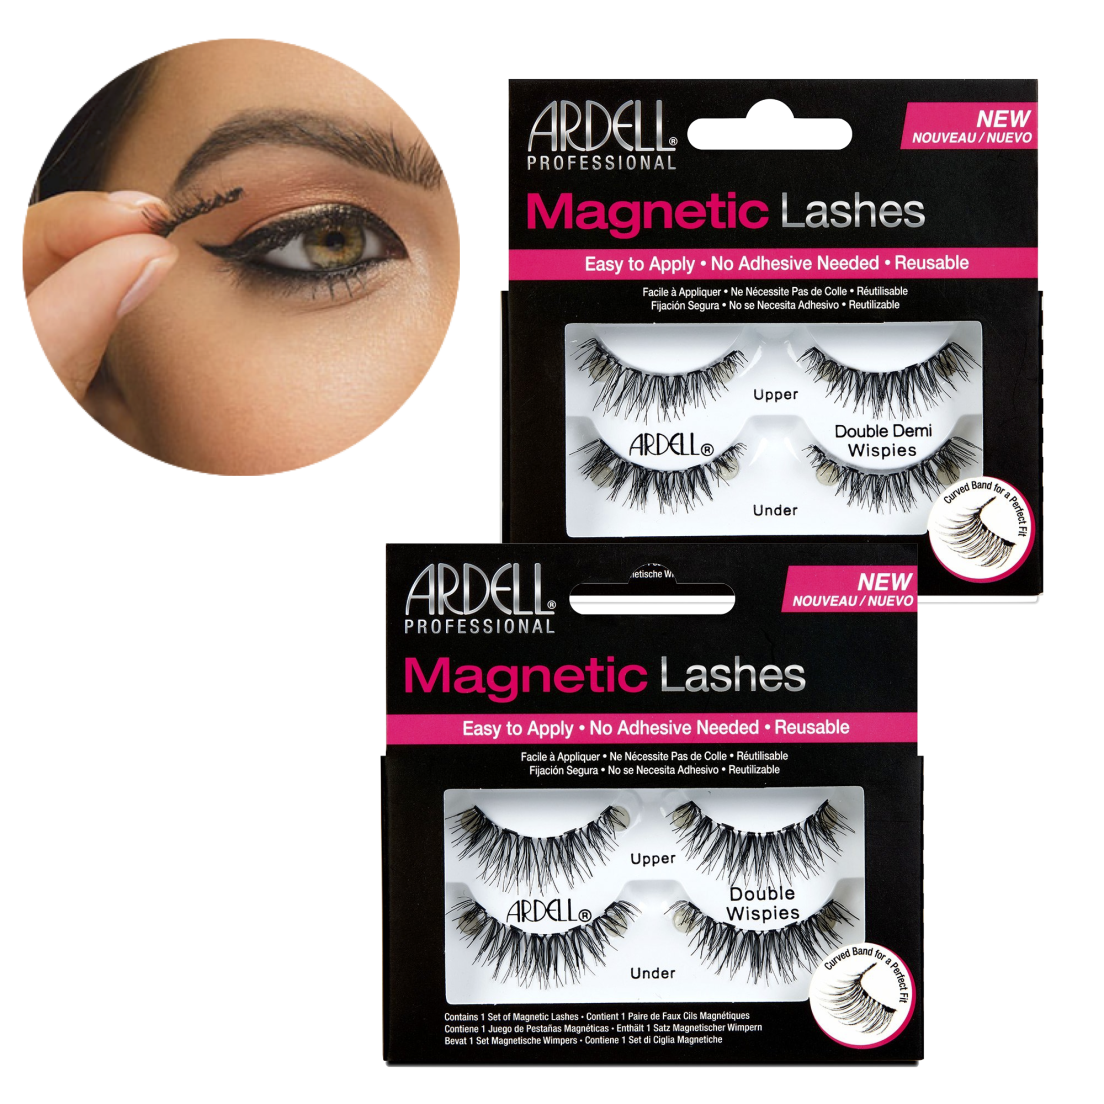 b4d838950ec 2-Pack: Ardell Professional Magnetic Lashes